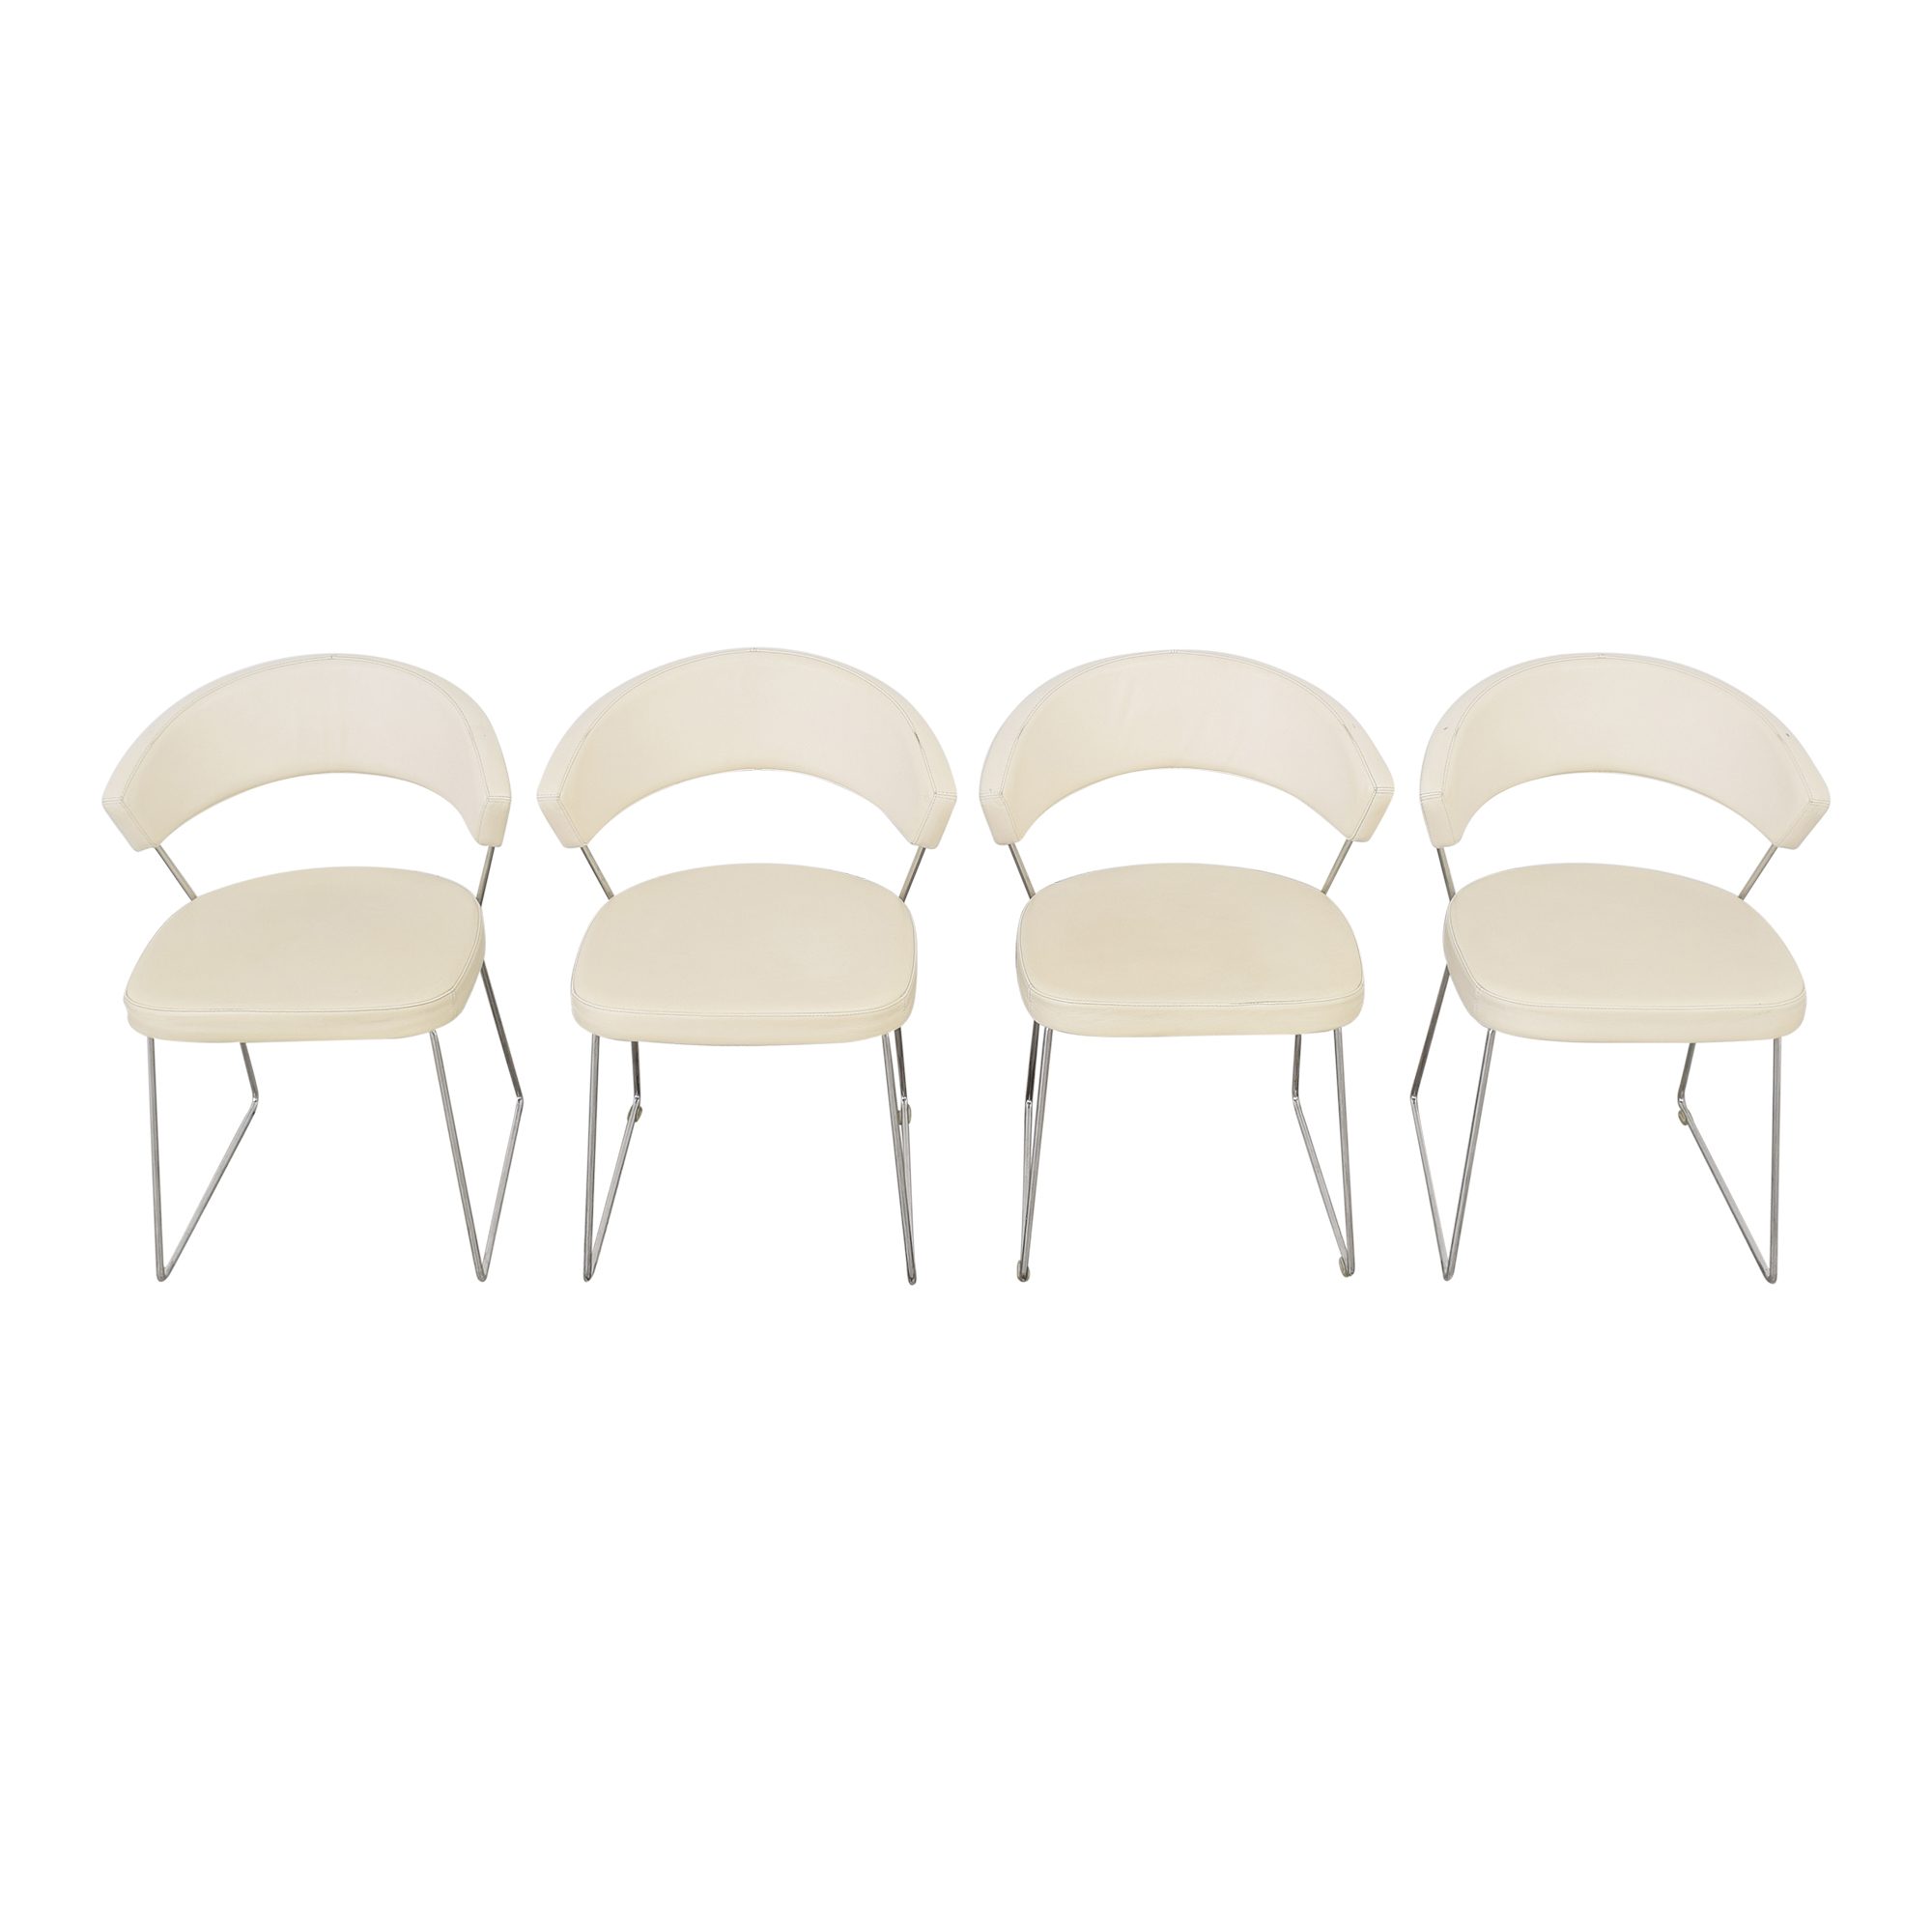 Calligaris Calligaris Icon Modern Dining Chairs used